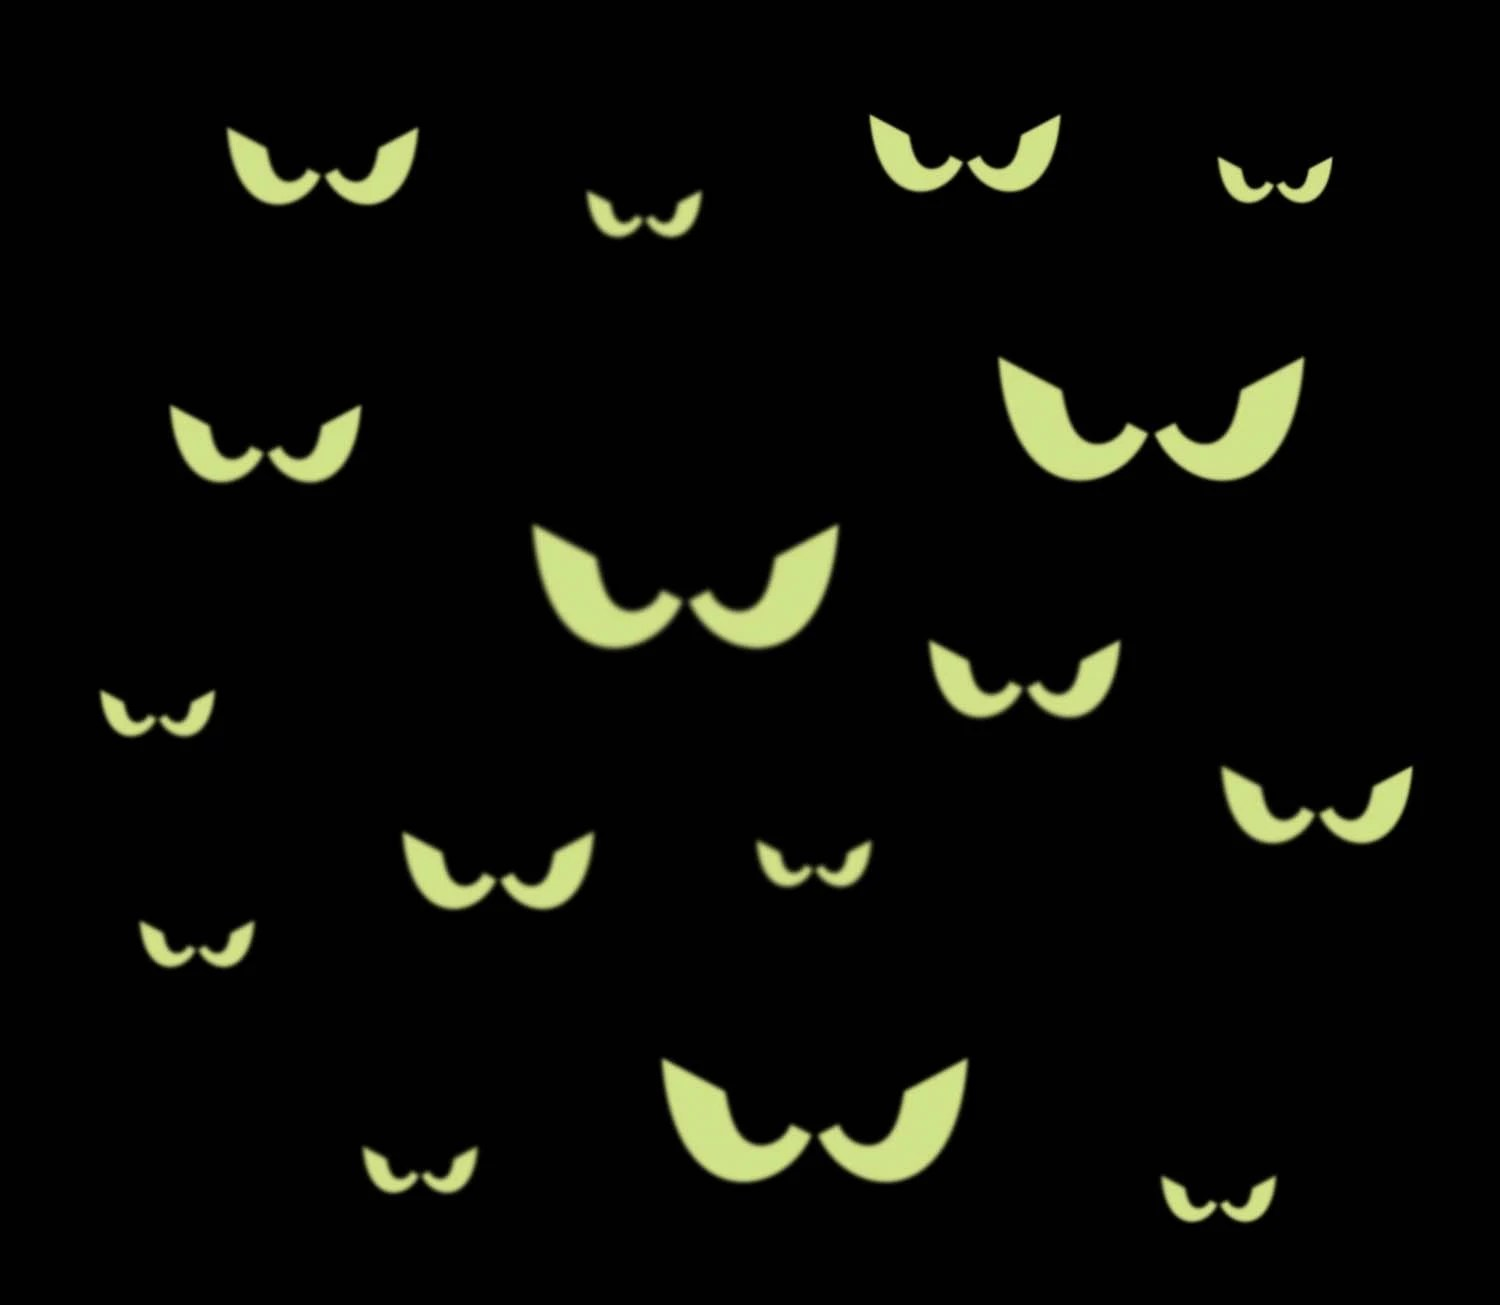 hight resolution of 16 spooky eyes glow in the dark removable wall decal free scary tree drawings halloween moon clip art